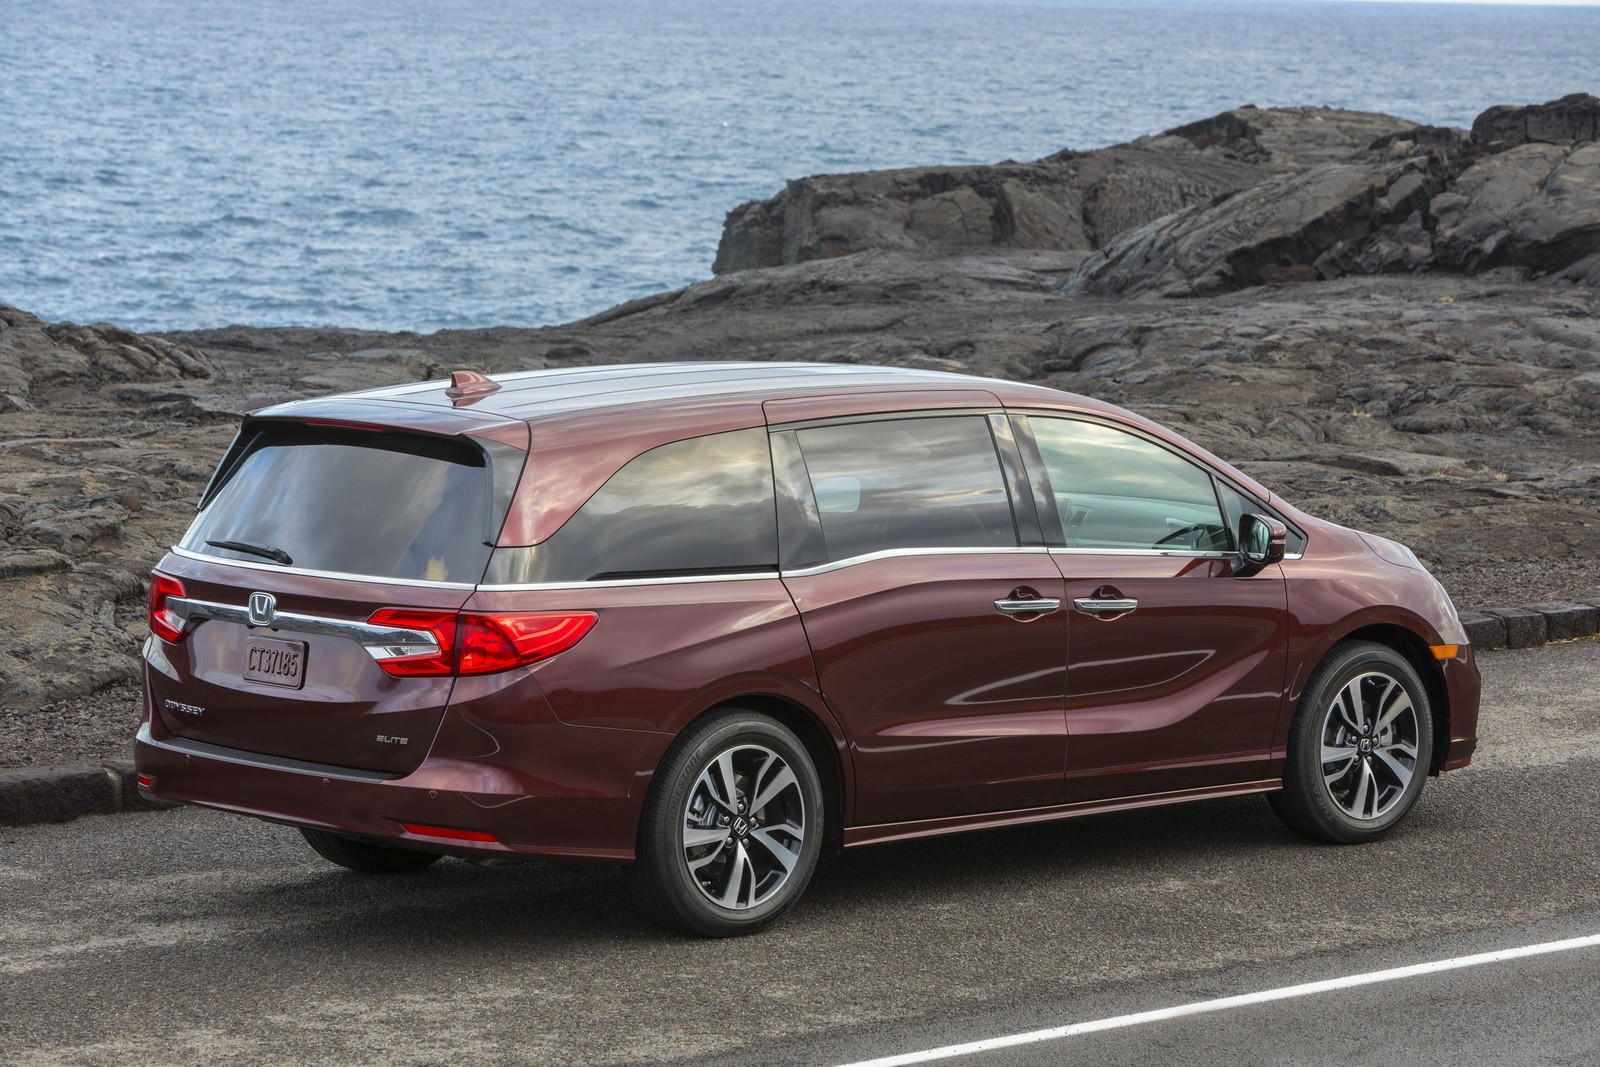 2018 honda odyssey goes on sale starting at 29 990 autoevolution. Black Bedroom Furniture Sets. Home Design Ideas